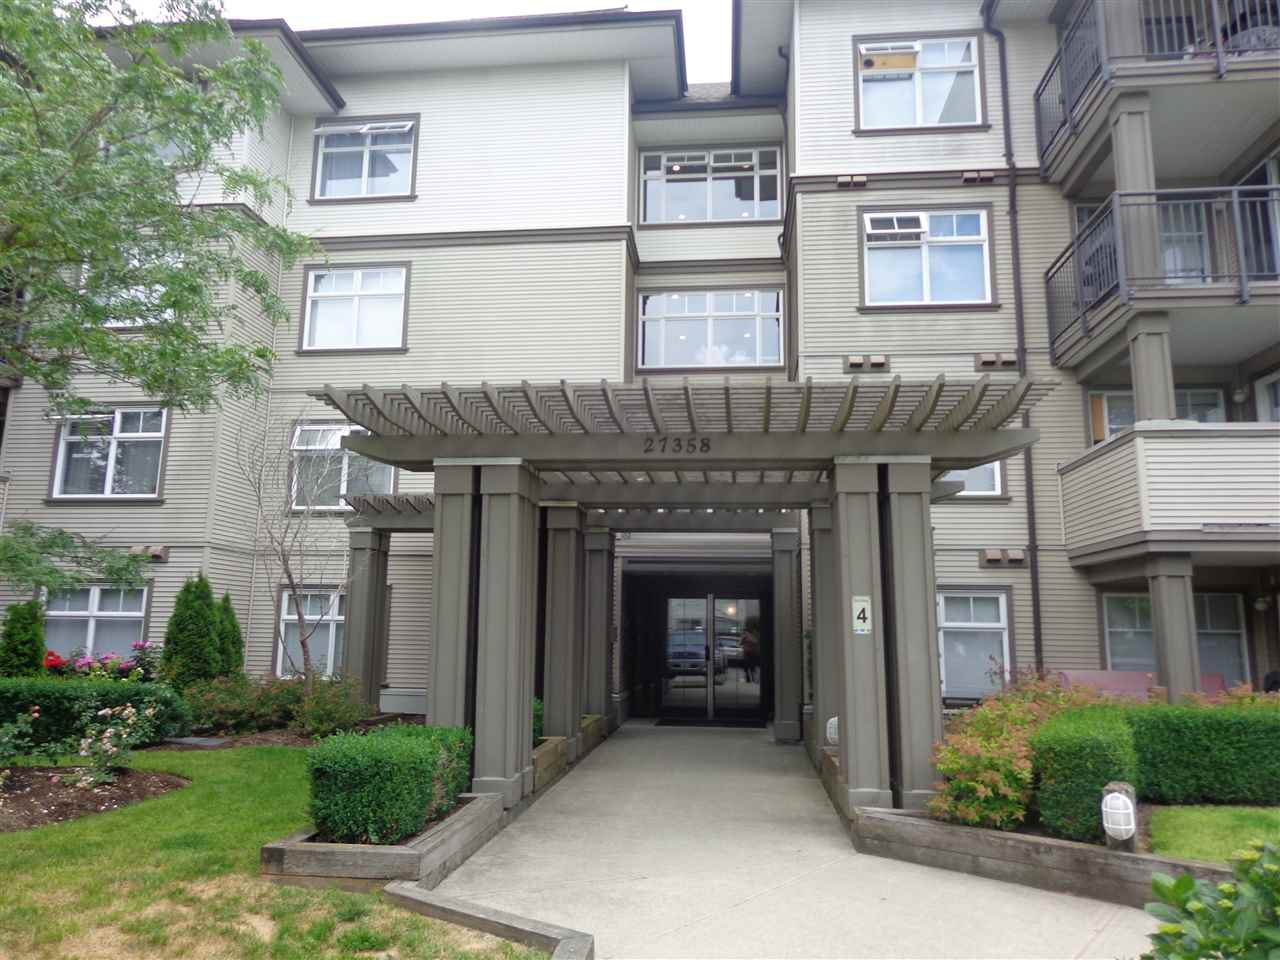 "Main Photo: 240 27358 32 Avenue in Langley: Aldergrove Langley Condo for sale in ""Willowcreek Phase 4"" : MLS®# R2385454"